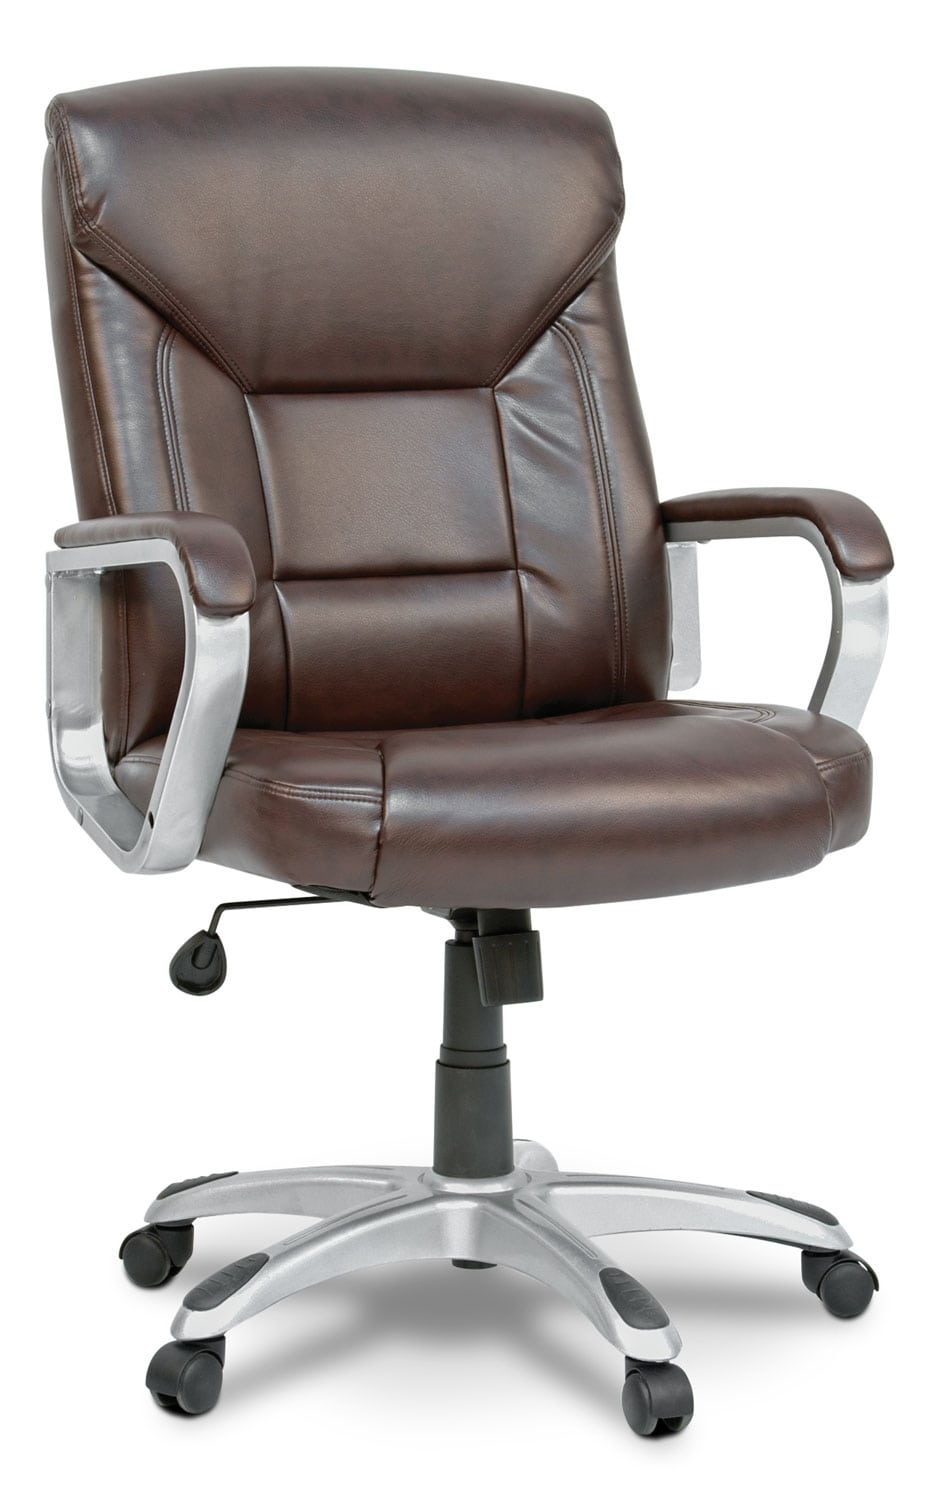 Tucson Deluxe Bonded Leather Executive Chair – Brown